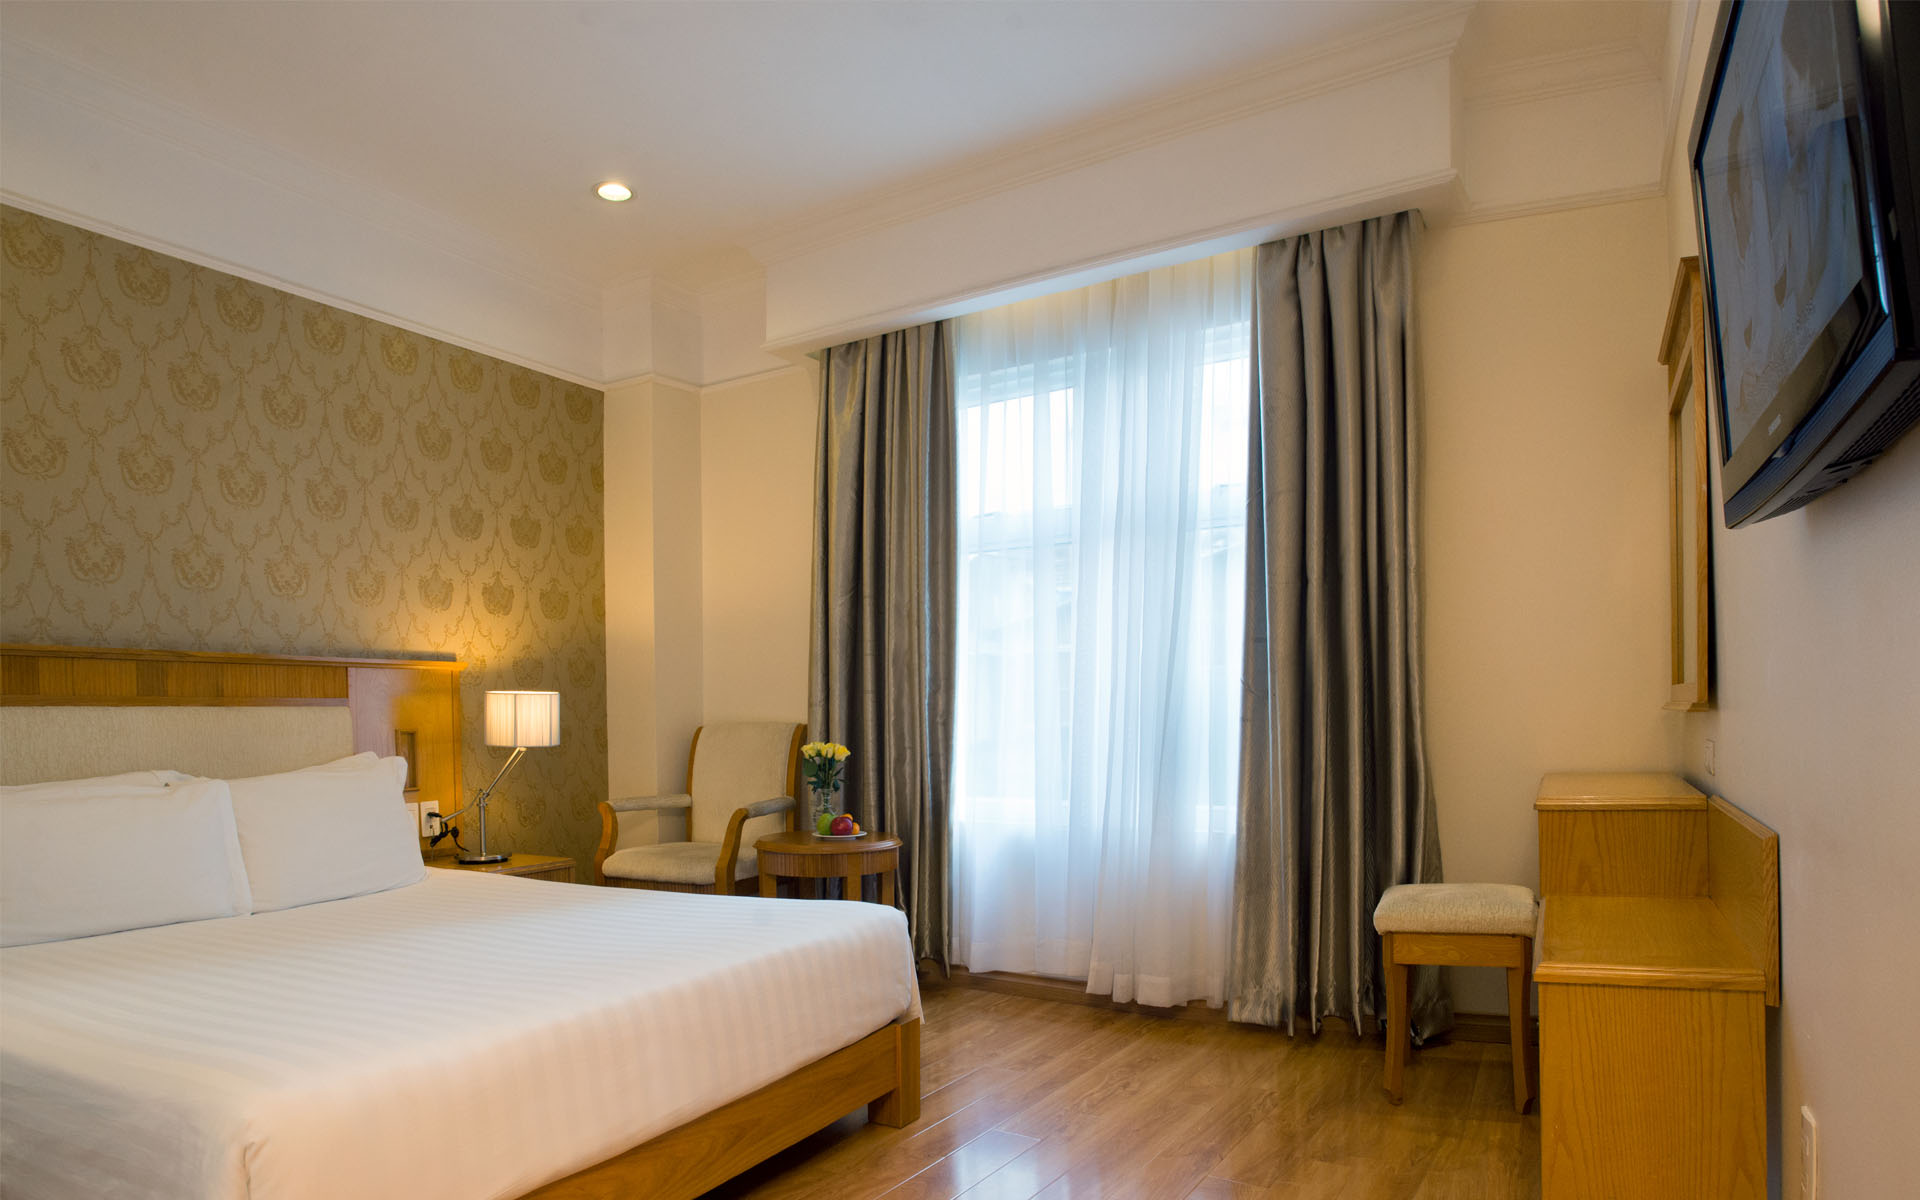 Silverland Central Hotel & Spa - My Way Travel Specialist